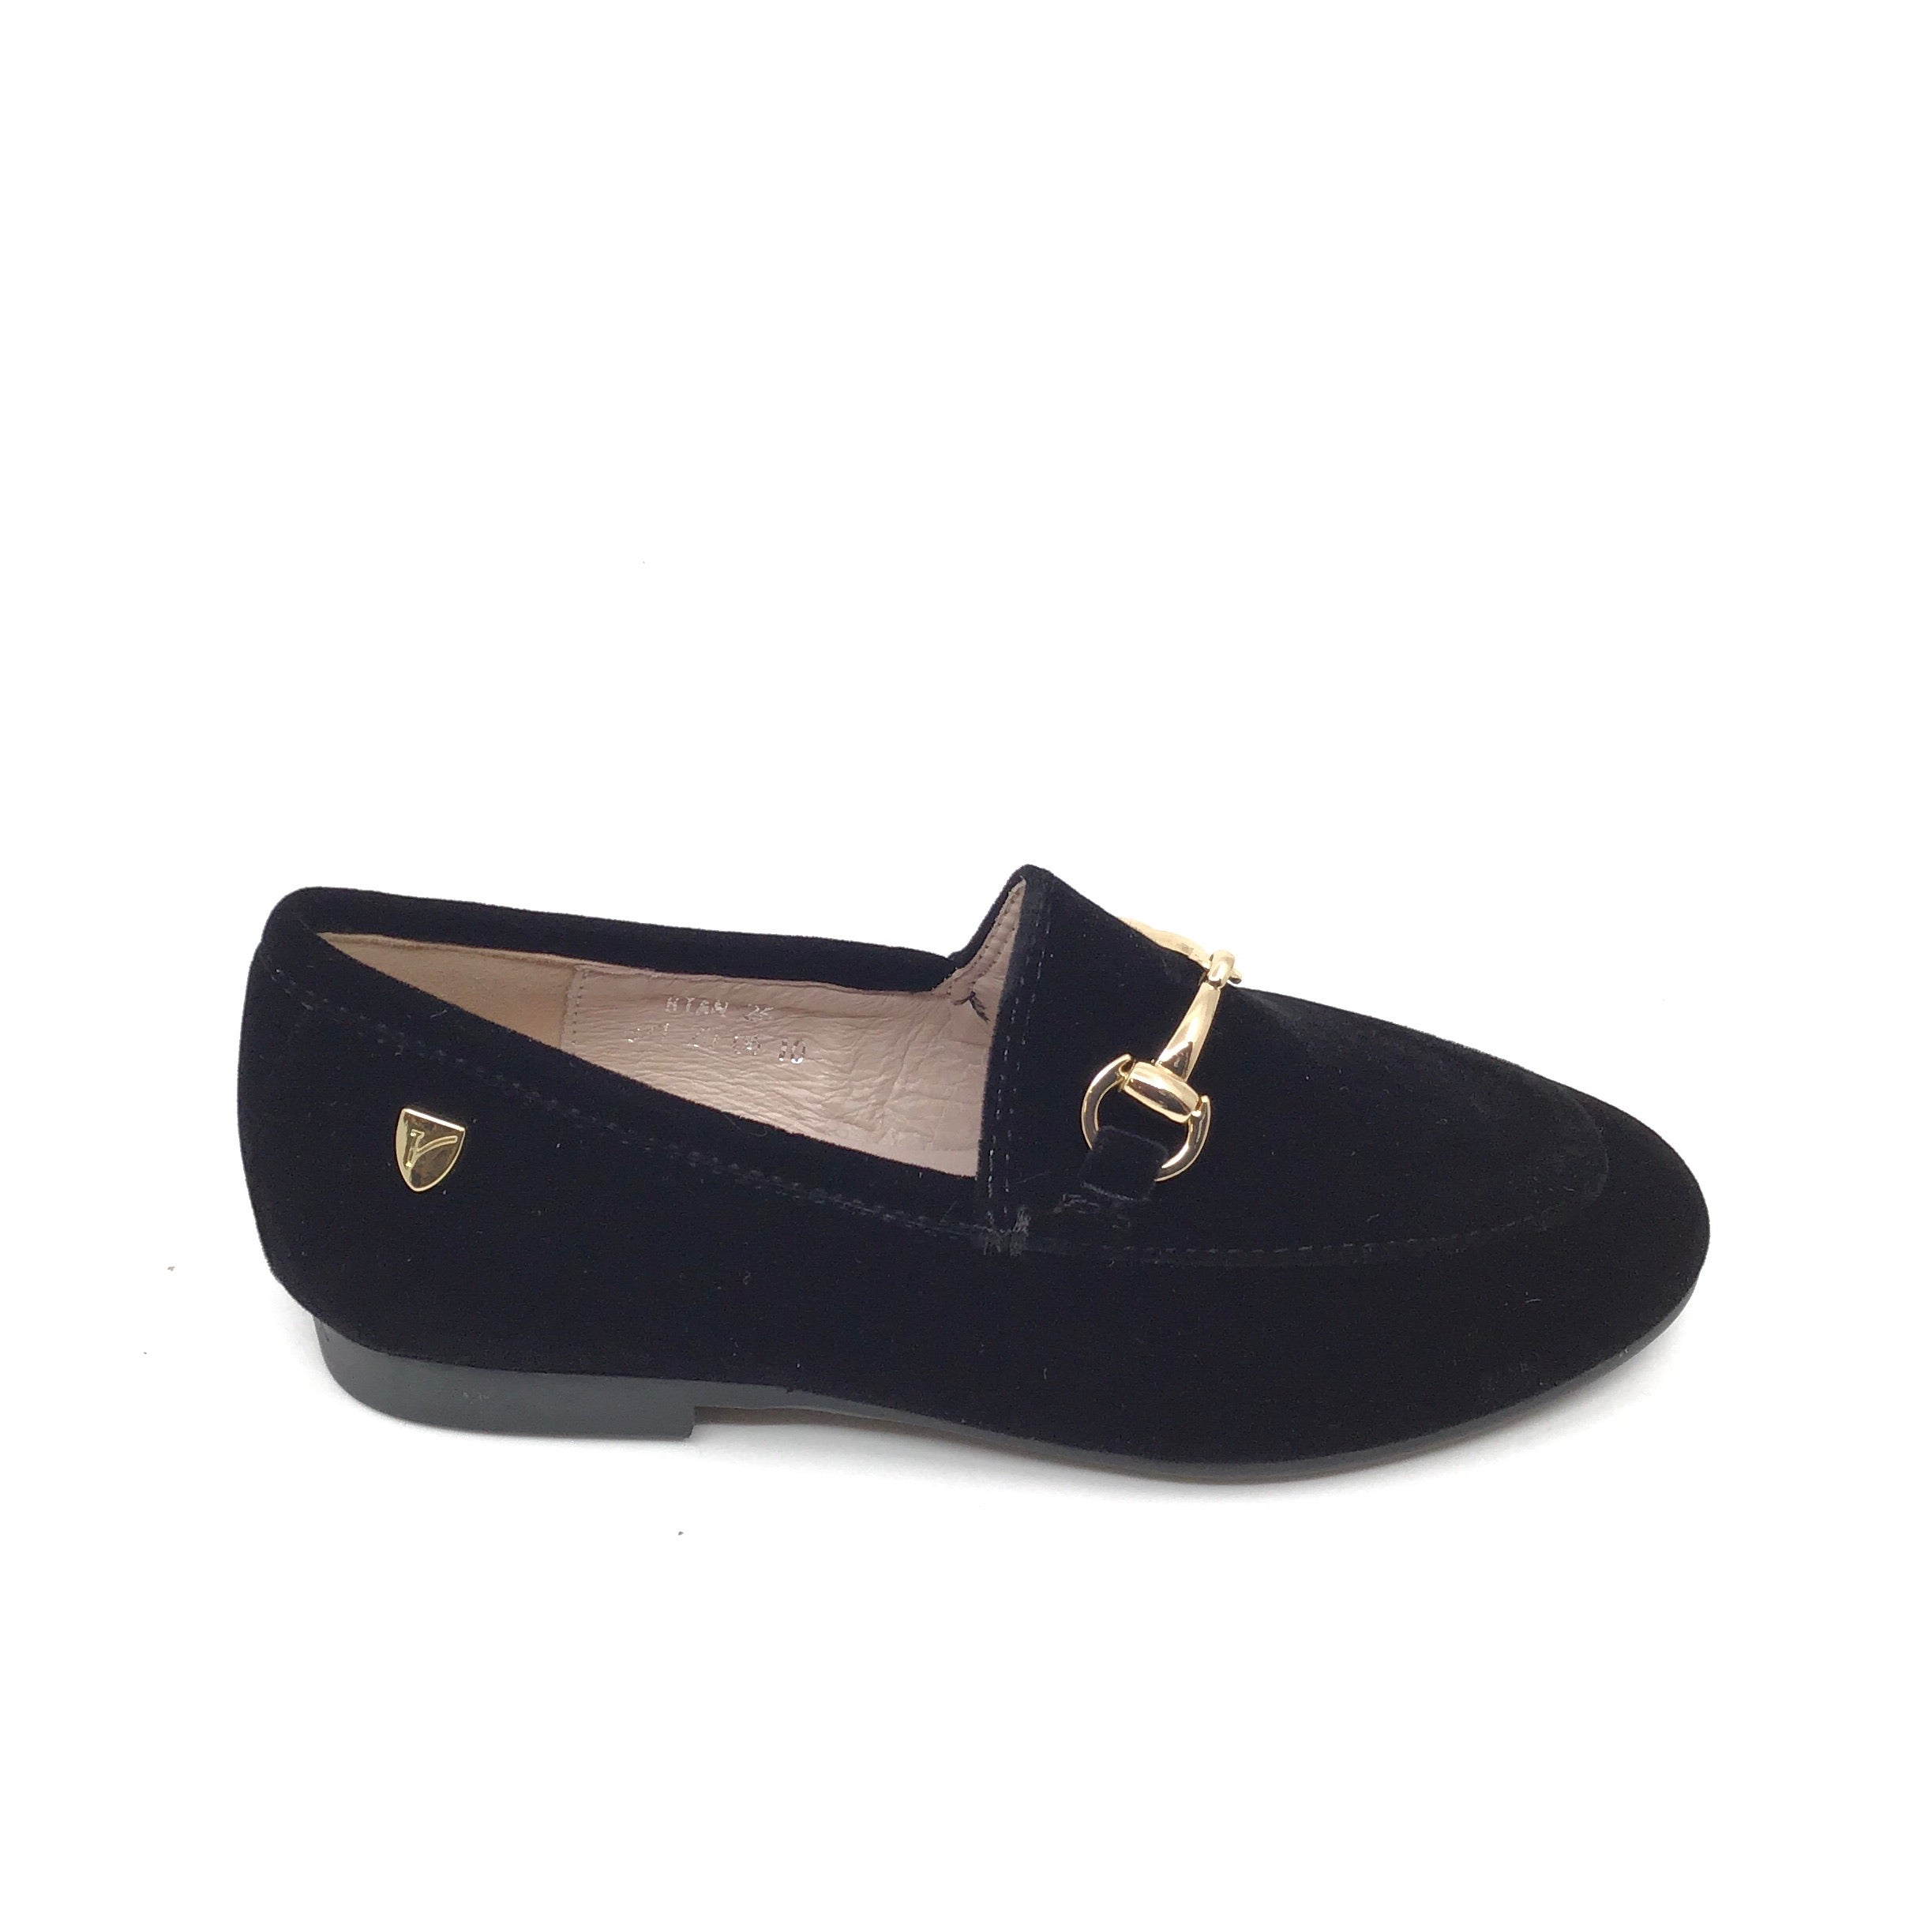 Venettini Black Velvet Slip On with Chain